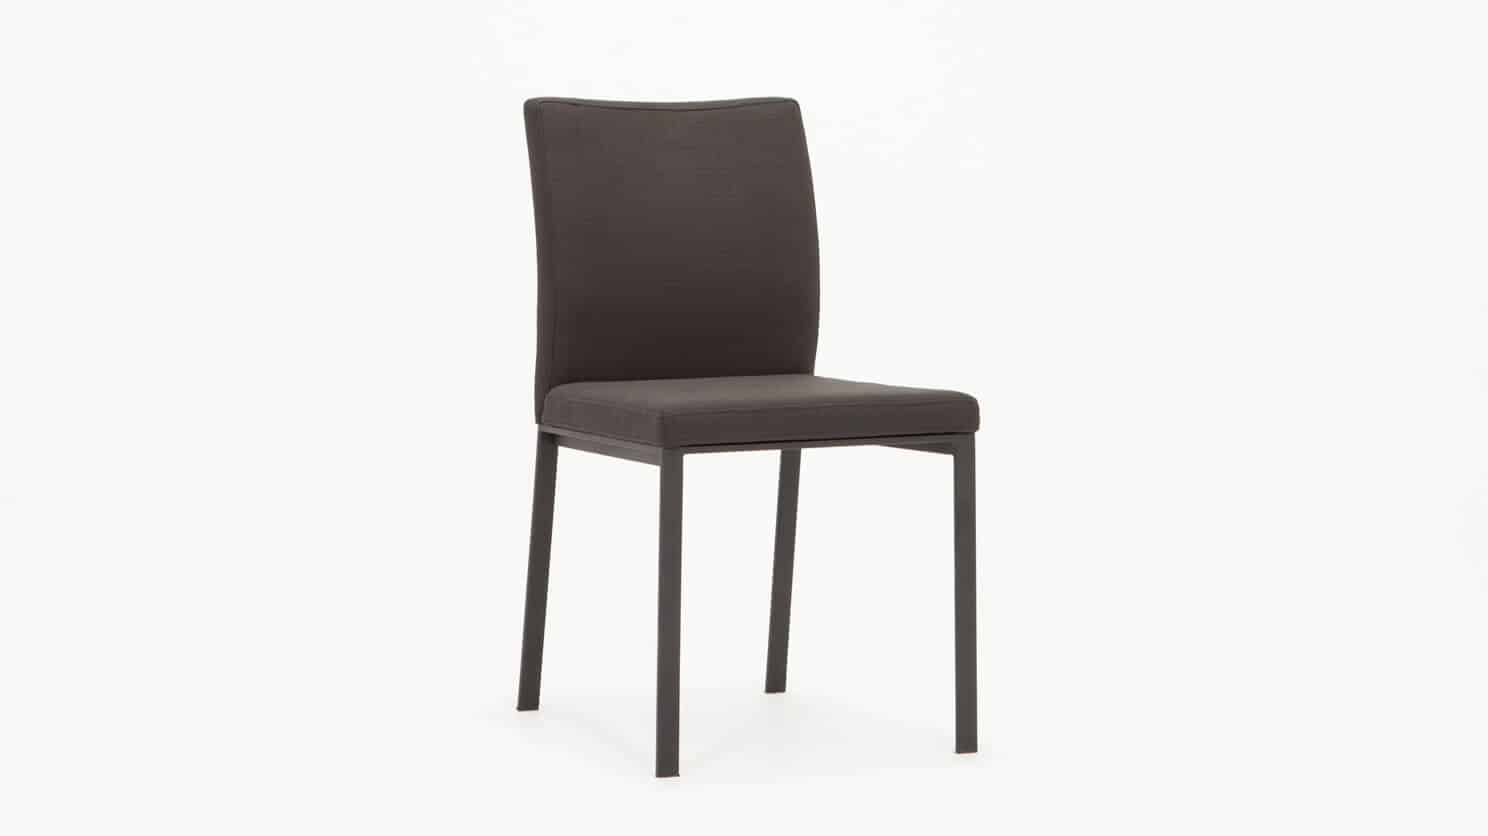 3020 395 par 4 dining chairs frank dining chair anthracite corner 01 1